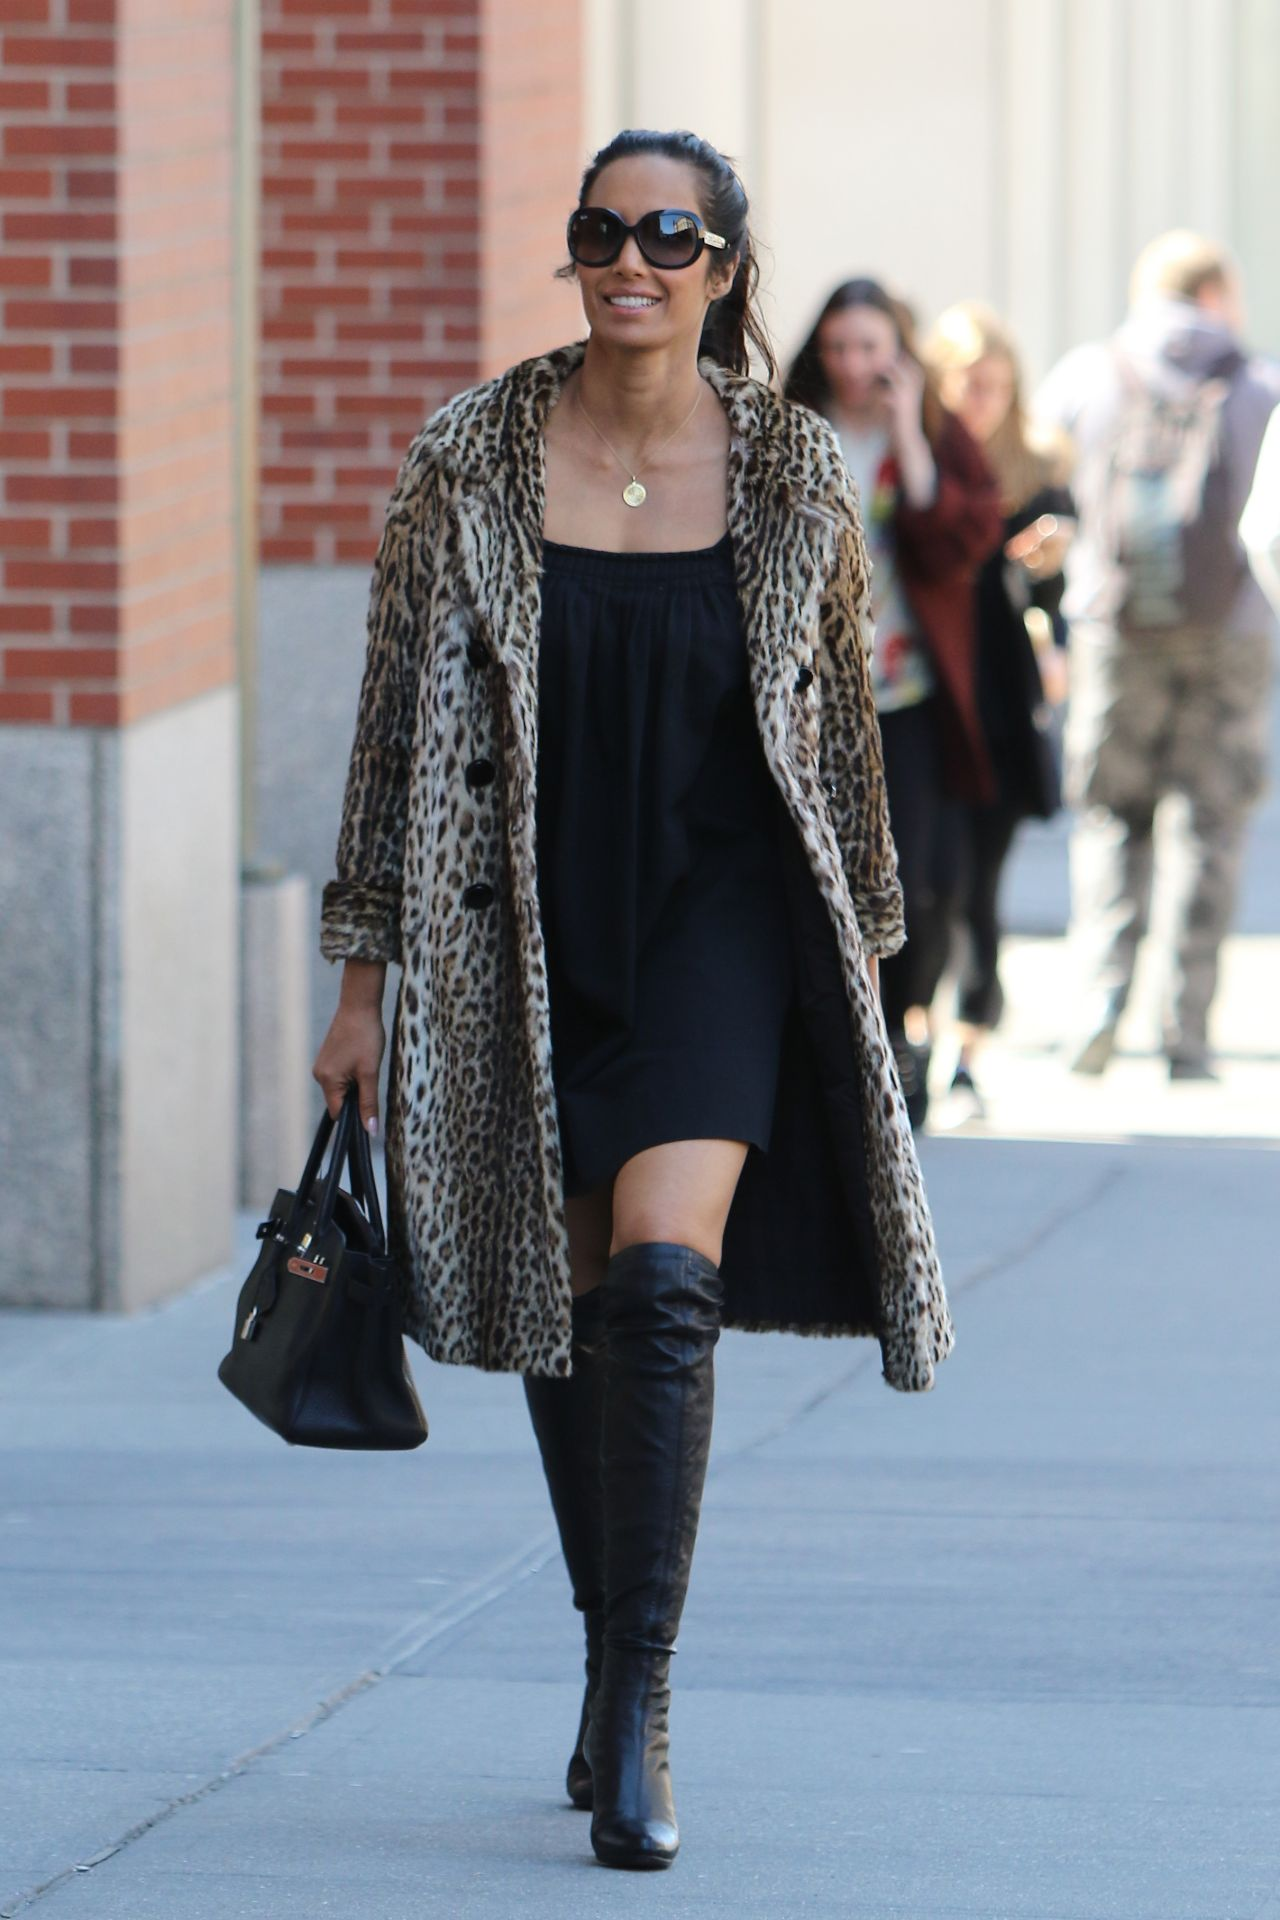 Lakshmi Wearing a Little Black Dress and Knee High Boots in NYC 4 ...